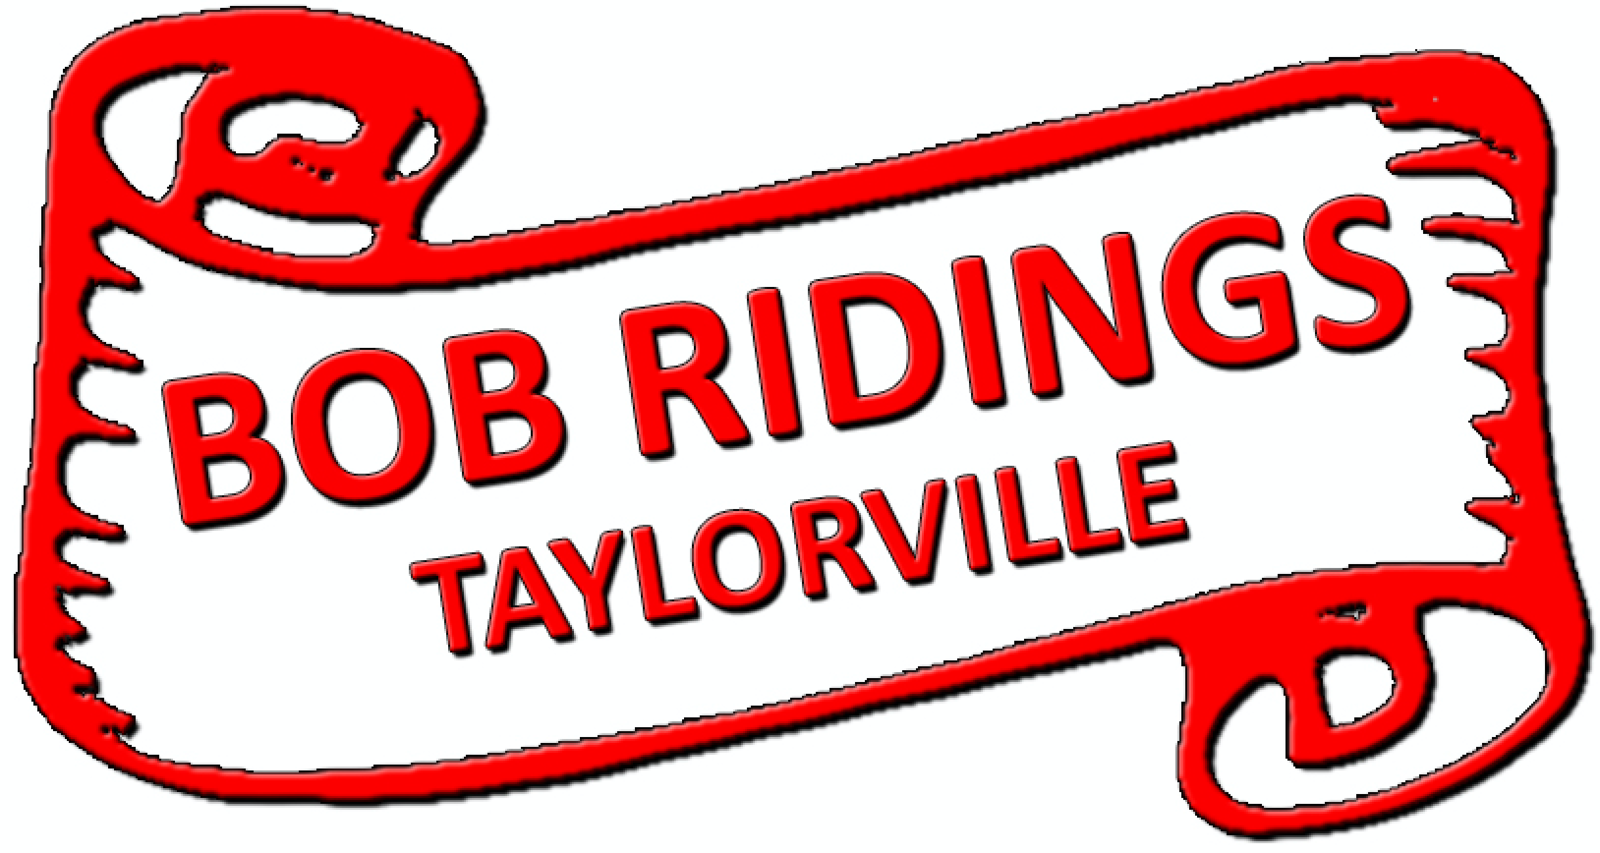 Bob Ridings Ford Taylorville Il Read Consumer Reviews Browse Used And New Cars For Sale